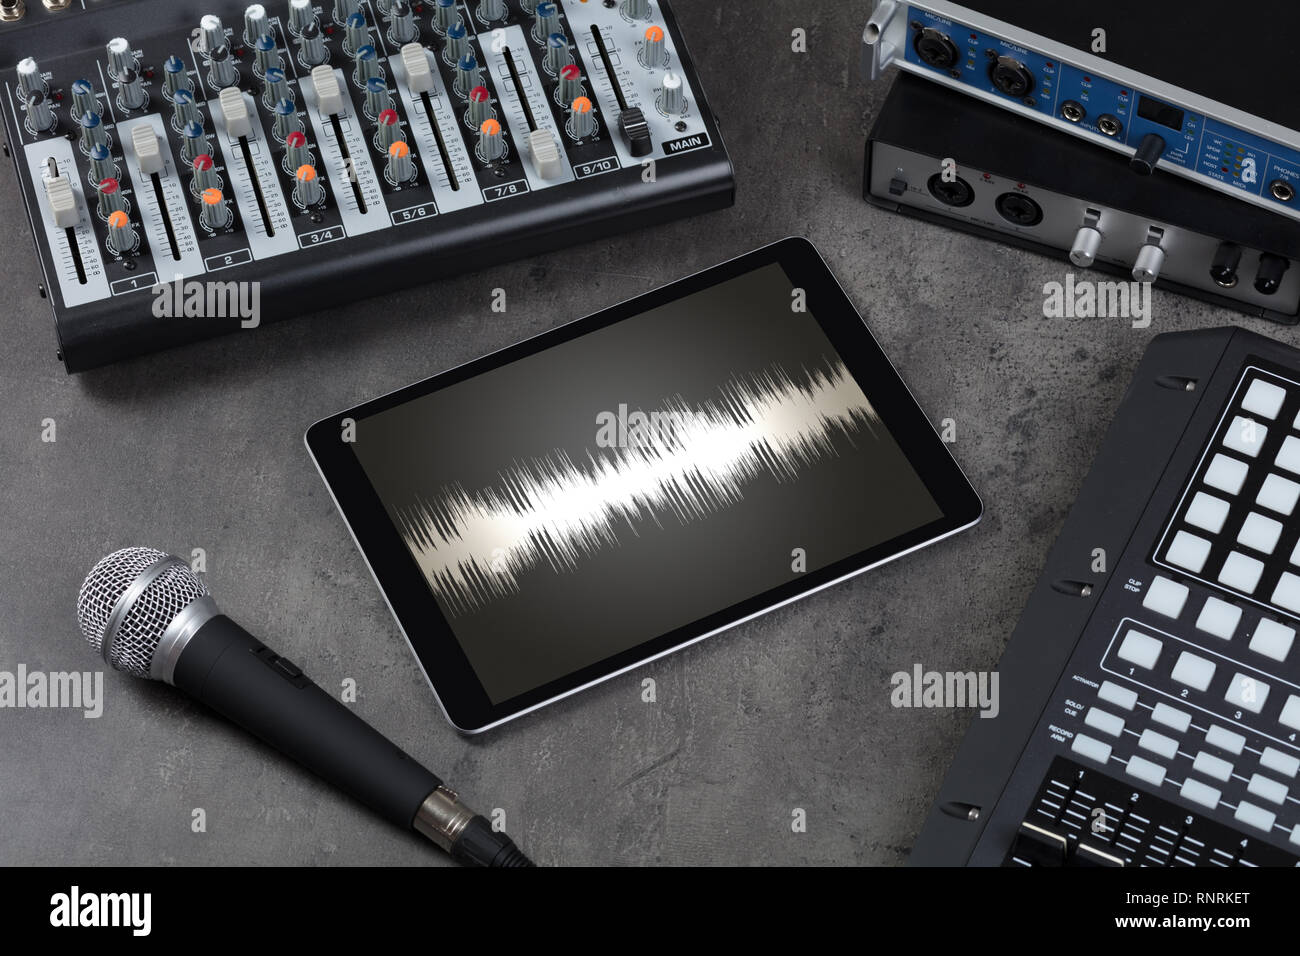 Recording music with tablet and electronic music instruments   - Stock Image